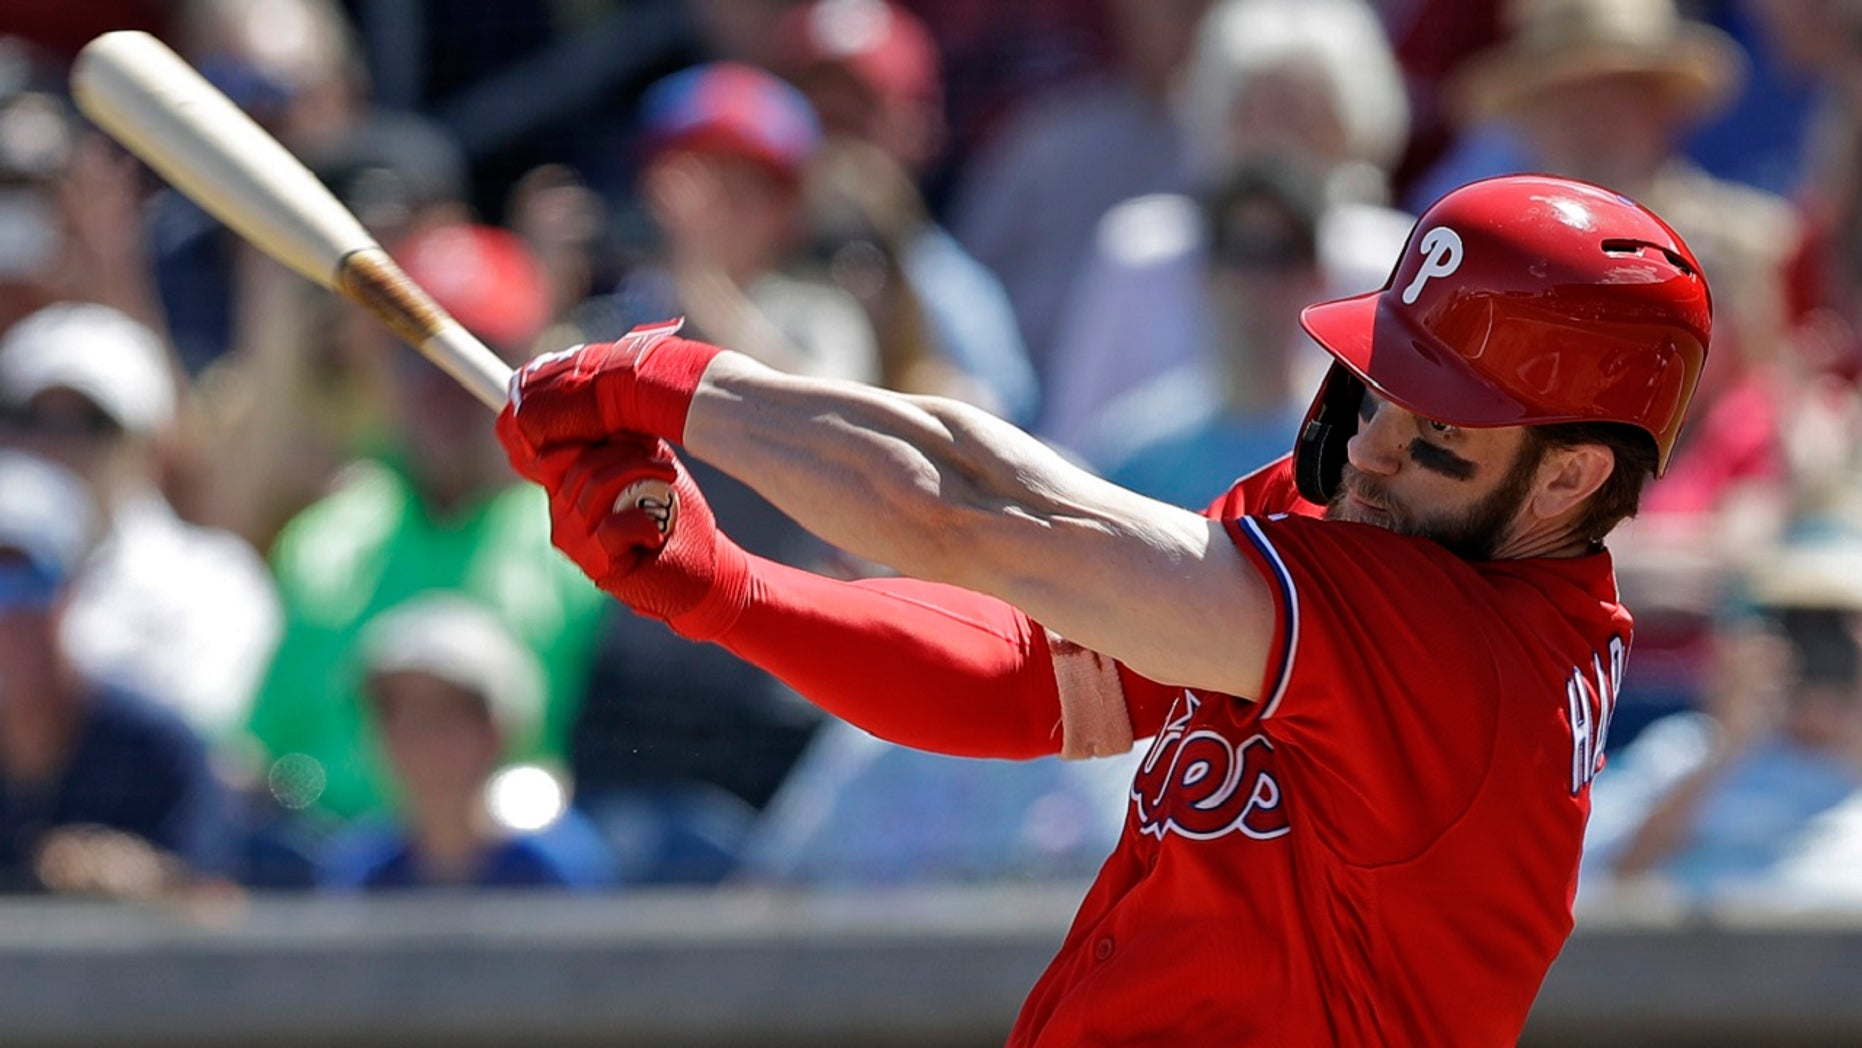 Phils expect Harper to be ready for opener